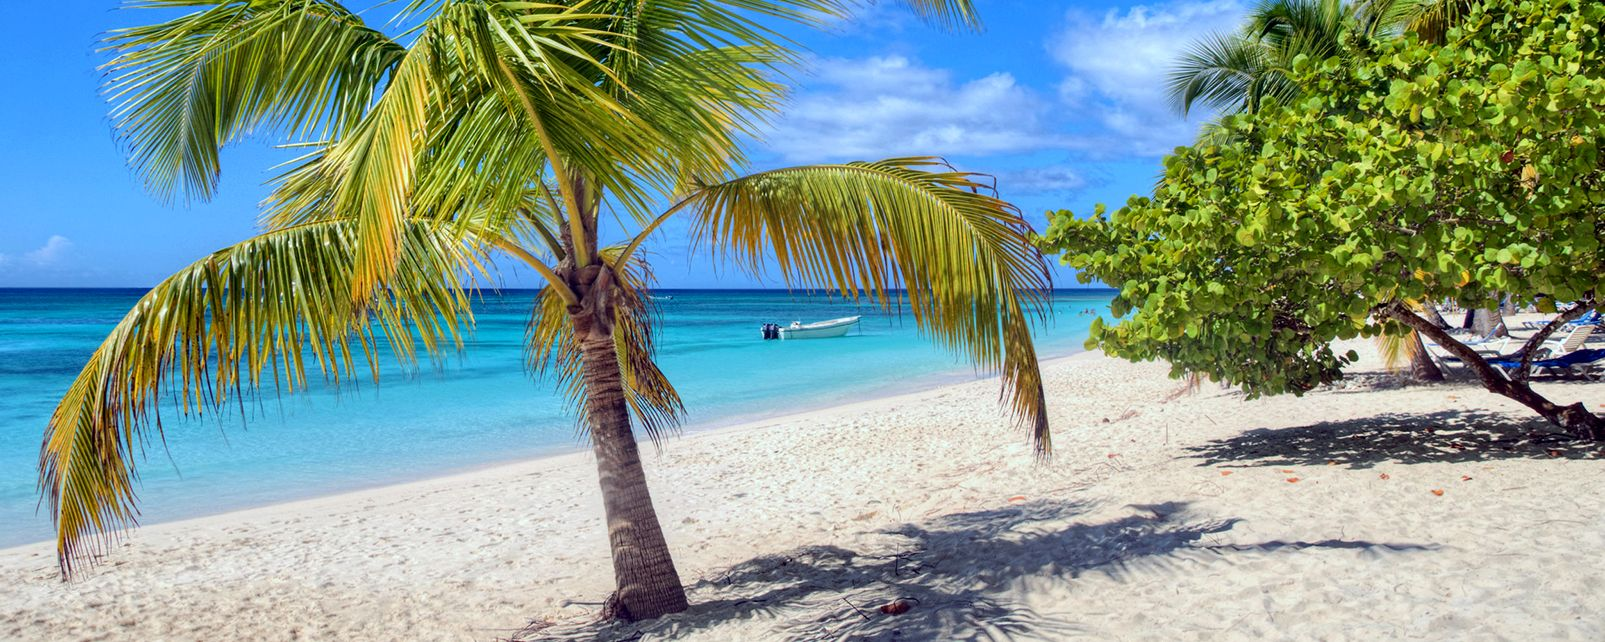 Staying with the locals, Isla Saona, Islands and beaches, Punta Cana, Dominican Republic